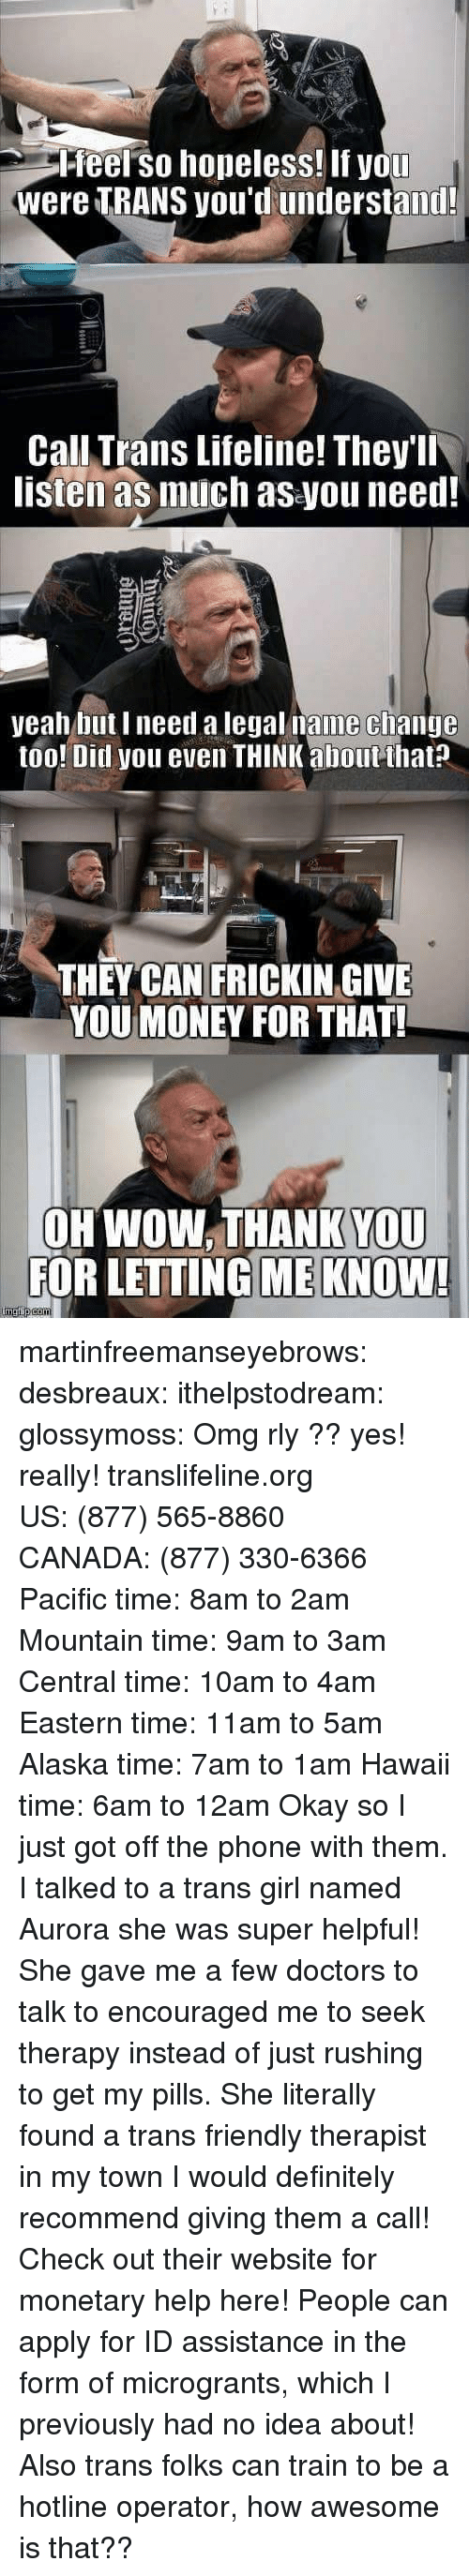 Definitely, Money, and Omg: Pfeel so hopeless! If you  were TRANS you'd understand!  Call Trans Lifeline! They'll  listen as much as you need!  yeah but I need a legal name clhange  too! Ditl you even THINK about that?  THEY CAN FRICKIN GIVE  YOU MONEY FOR THAT!  OH WOW. THANK YOU  FOR LETTING ME KNOW! martinfreemanseyebrows: desbreaux:  ithelpstodream:  glossymoss:  Omg rly ??  yes! really! translifeline.org US:(877) 565-8860 CANADA:(877) 330-6366 Pacific time: 8am to 2am Mountain time: 9am to 3am Central time: 10am to 4am Eastern time: 11am to 5am Alaska time: 7am to 1am Hawaii time: 6am to 12am   Okay so I just got off the phone with them. I talked to a trans girl named Aurora  she was super helpful! She gave me a few doctors to talk to  encouraged me to seek therapy instead of just rushing to get my pills. She literally found a trans friendly therapist in my town  I would definitely recommend giving them a call!   Check out their website for monetary helphere! People can apply for ID assistance in the form of microgrants, which I previously had no idea about! Also trans folks can train to be a hotline operator, how awesome is that??